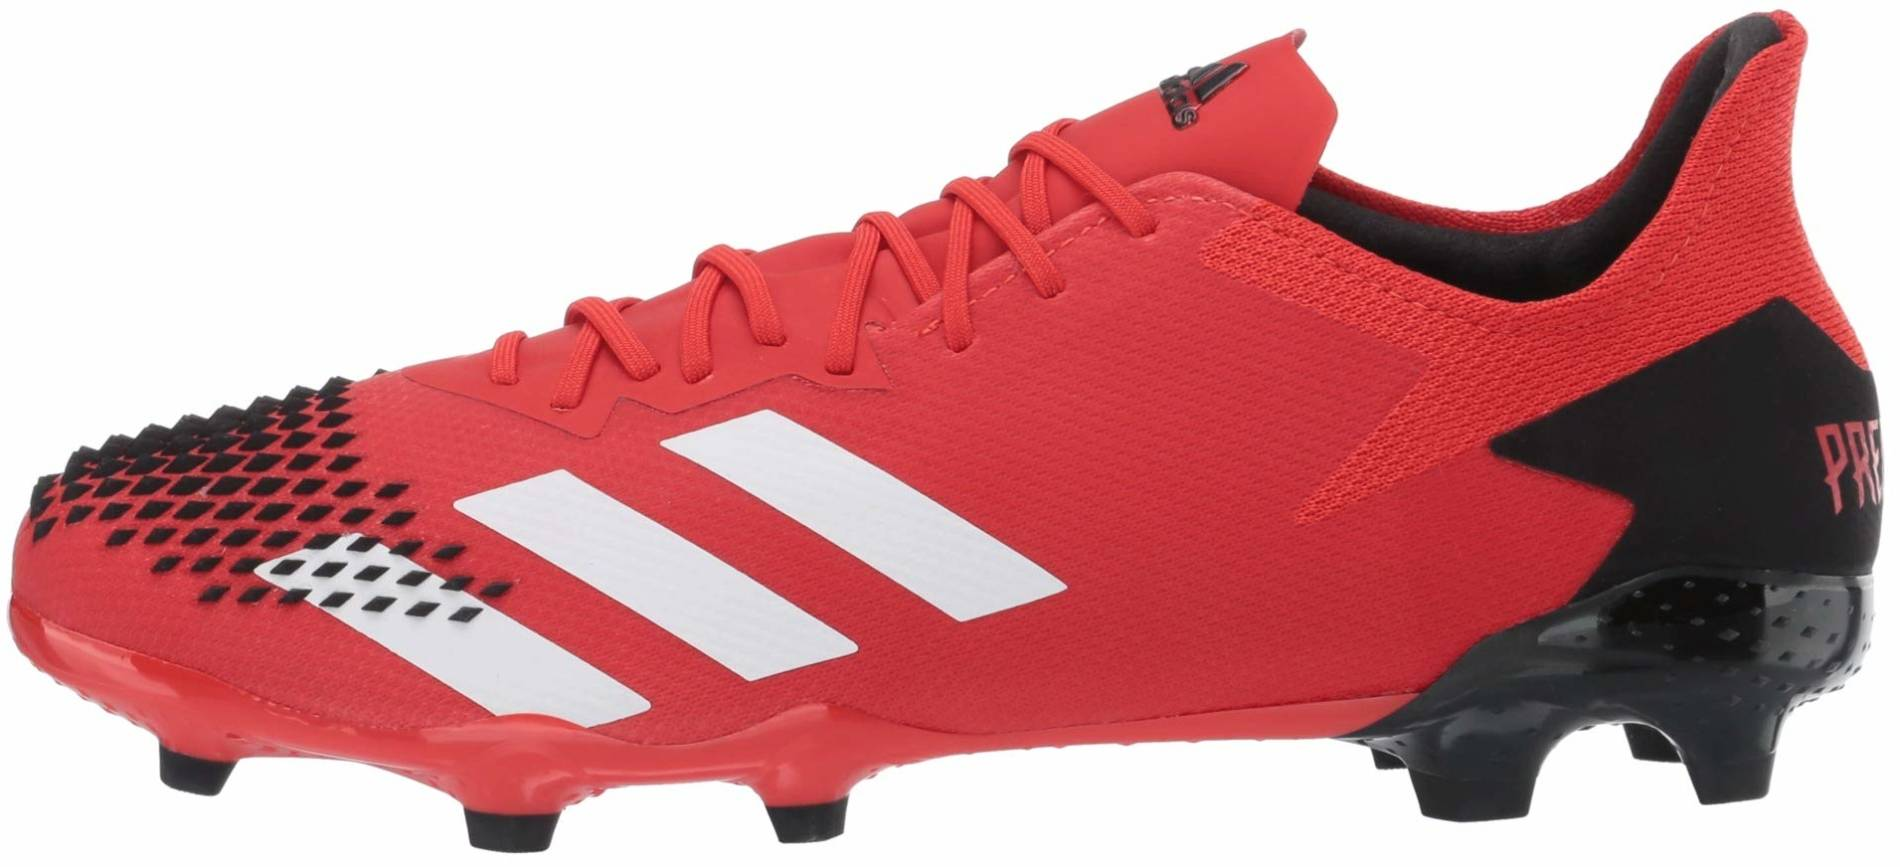 Save 49% on Red Soccer Cleats (71